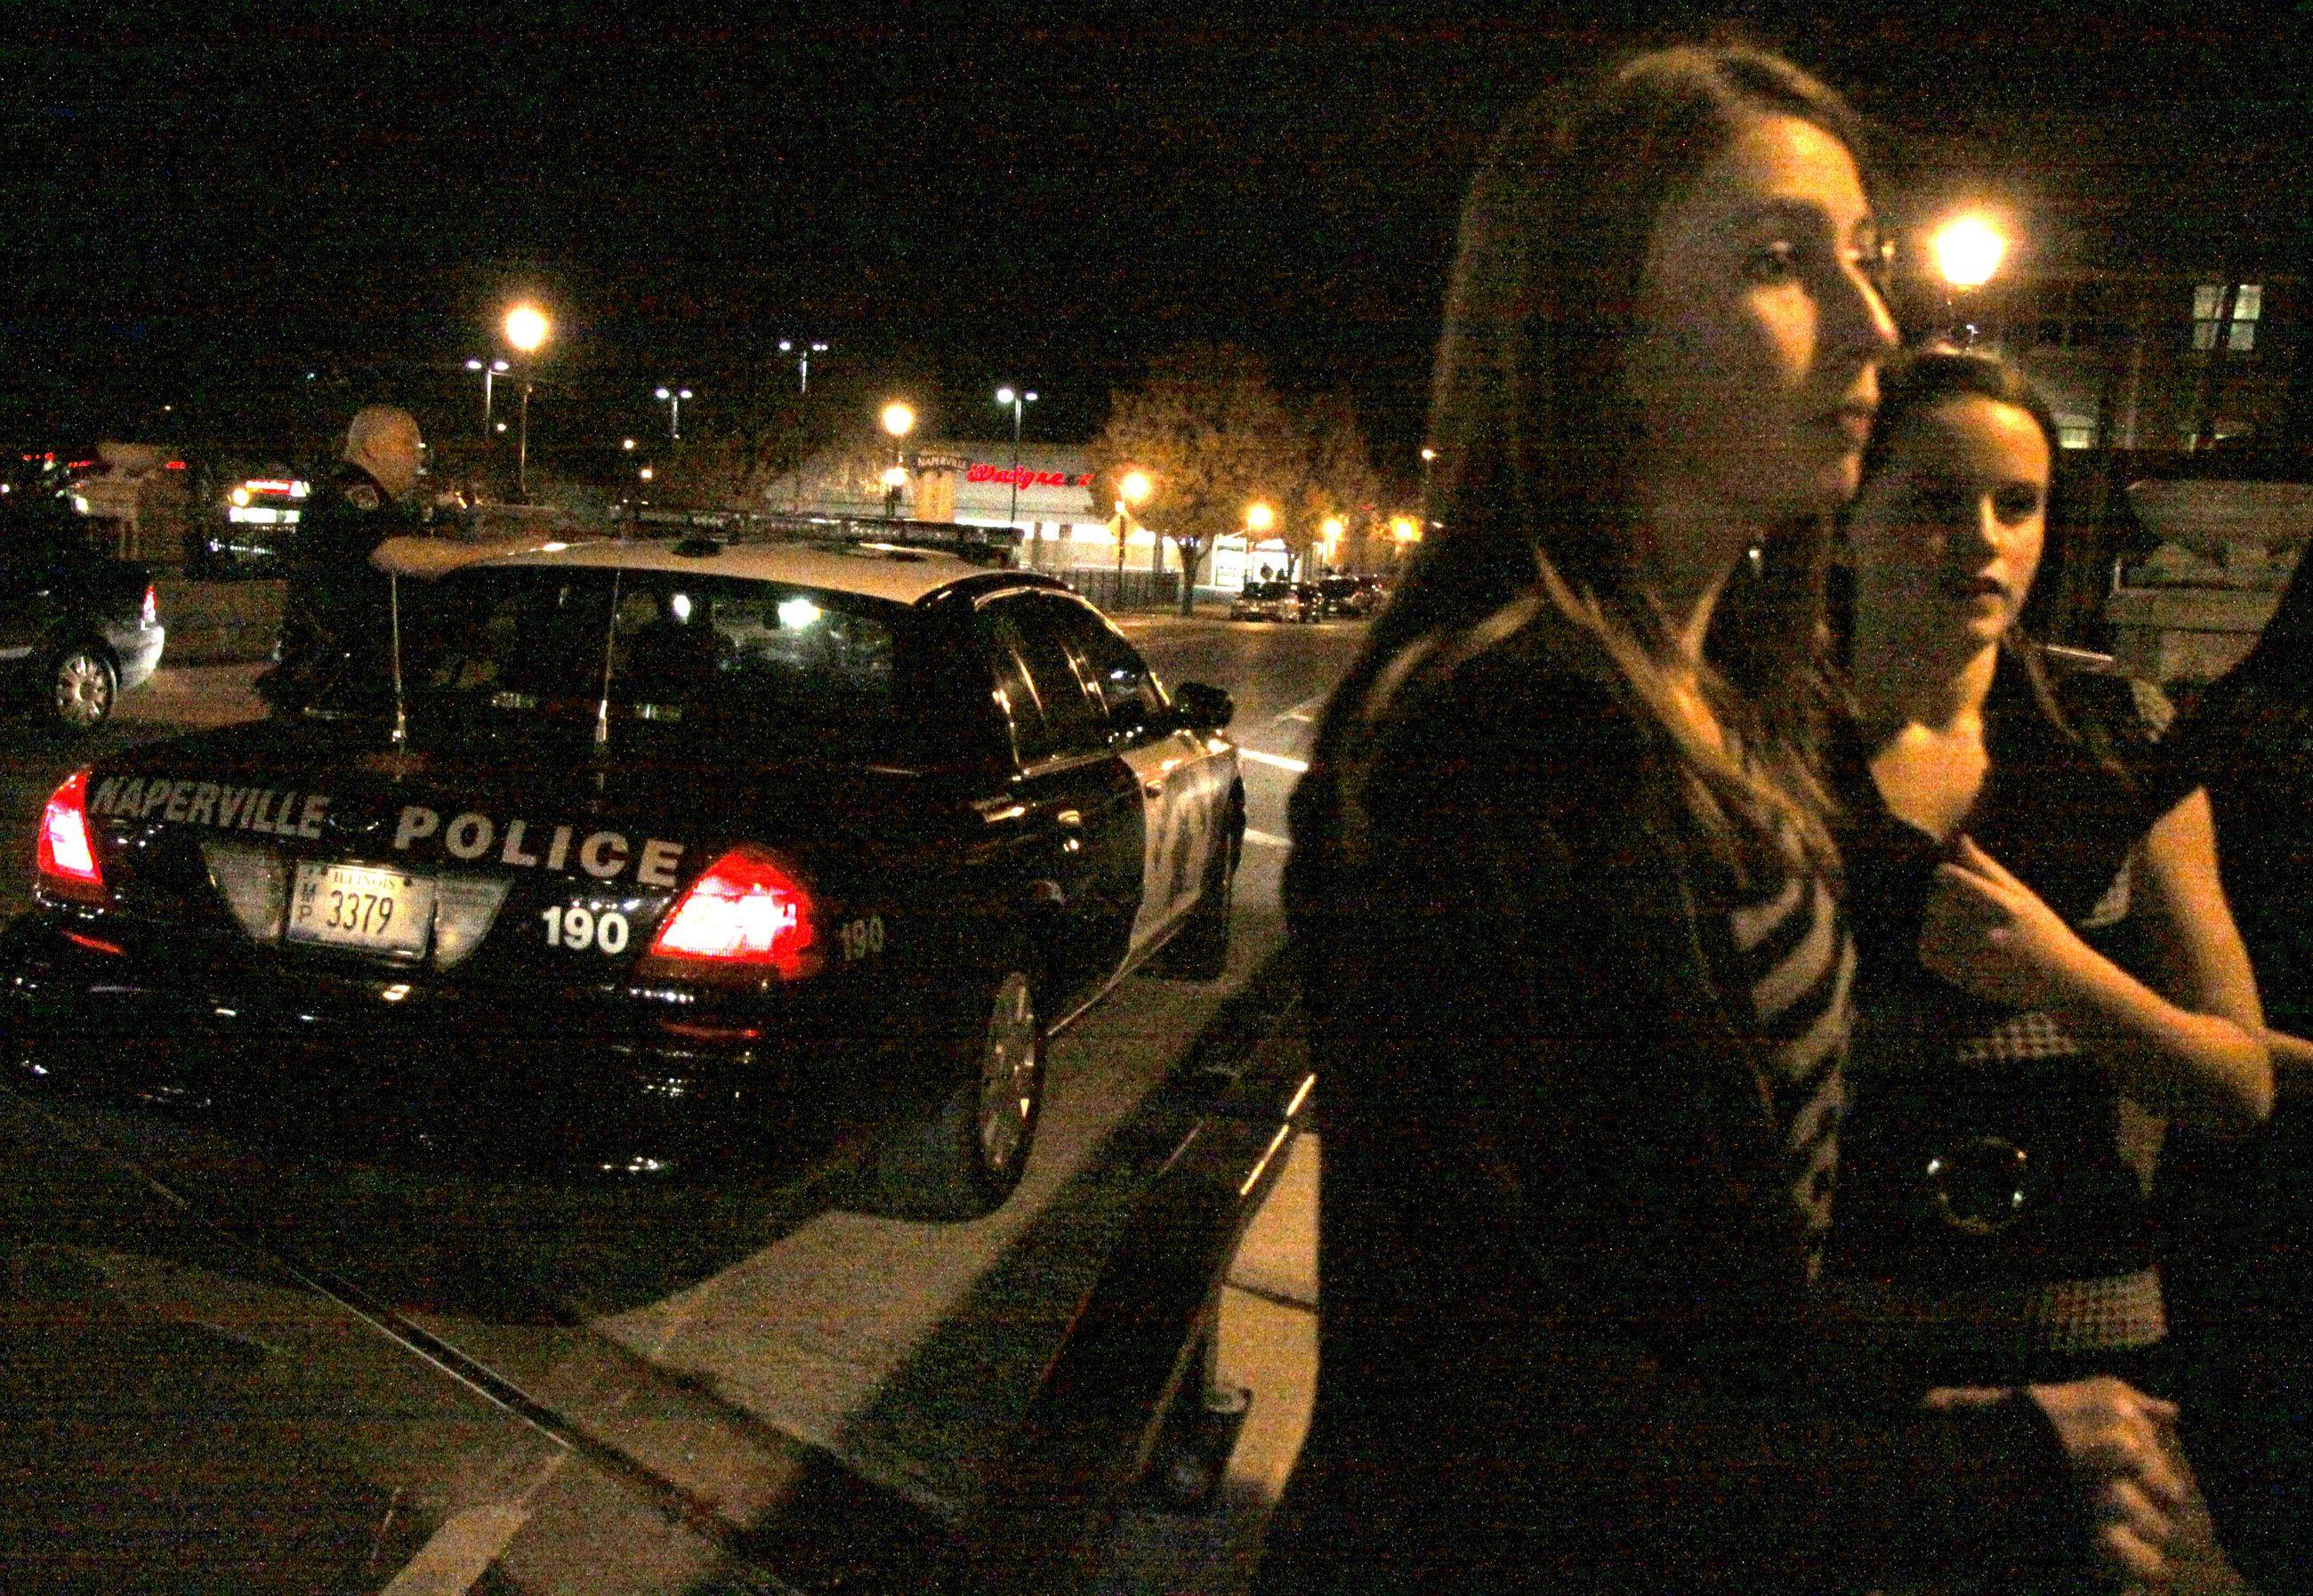 A group of young girls stopped to ask a Naperville police officer what the curfew was for underaged kids in Naperville Friday night.